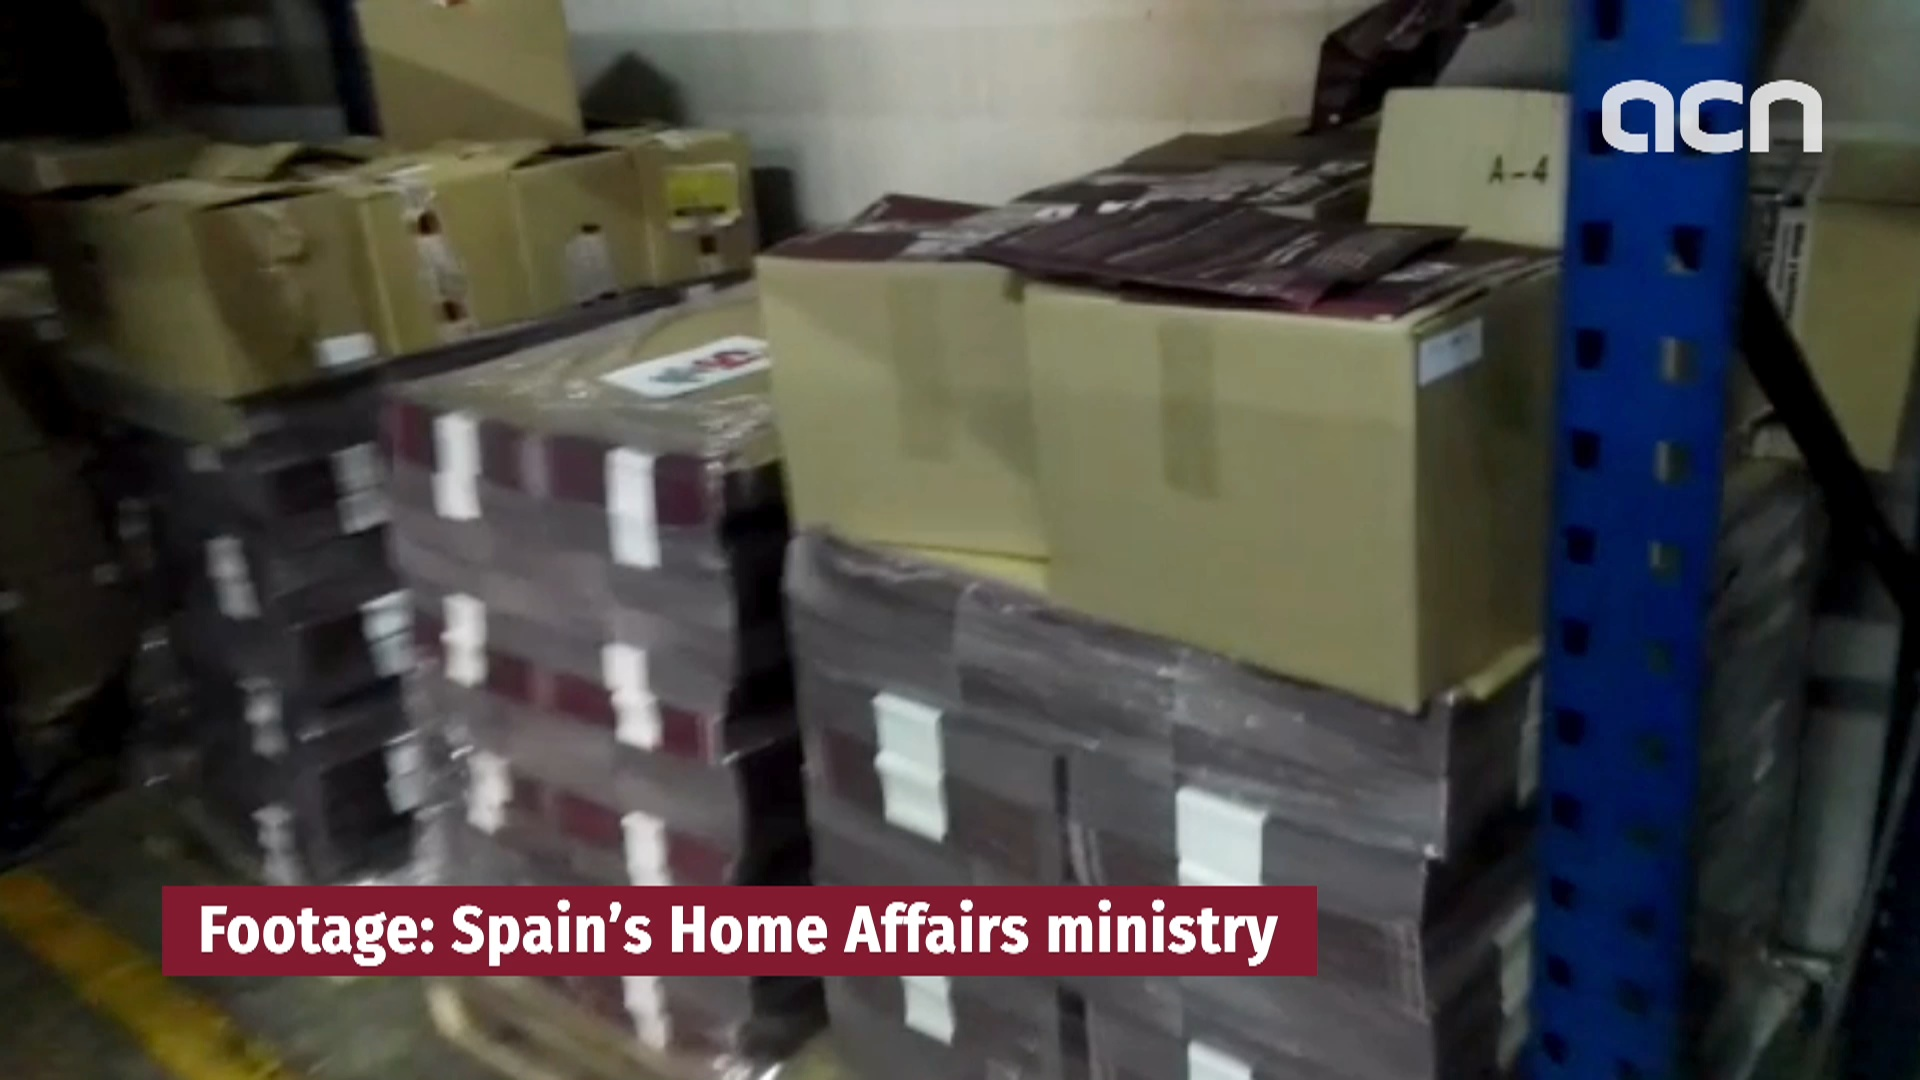 Spain's home affairs ministry shows some of the 1.3 million confiscated posters